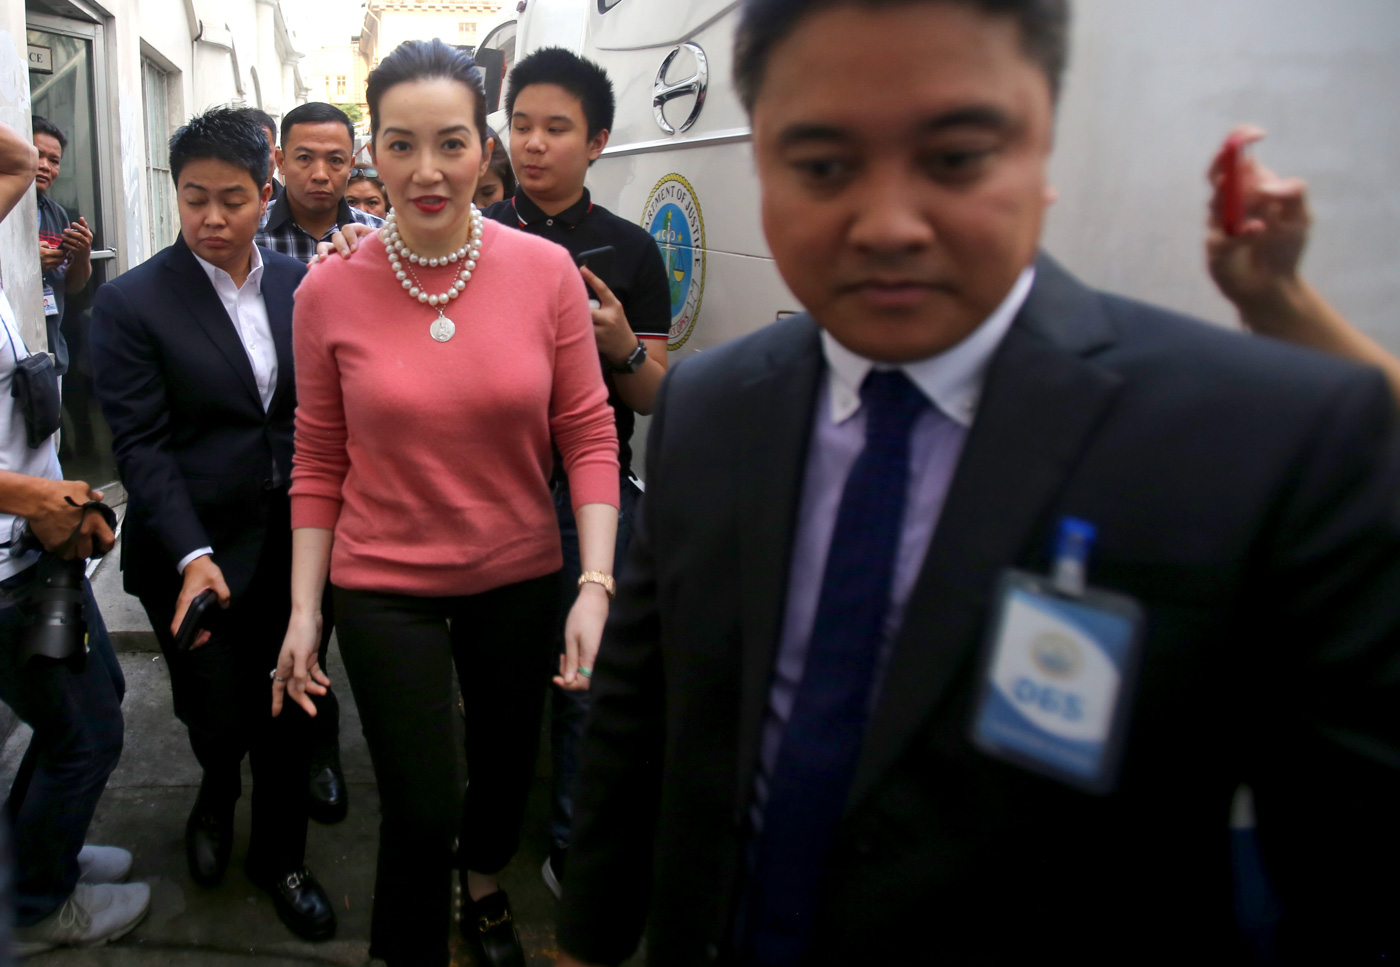 LEGAL BATTLE. Kris Aquino arrives at the Department of Justice to file cybel libel case against Atty. Jesus Falcis on November 22, 2018. File photo by Inoue Jaena/Rappler